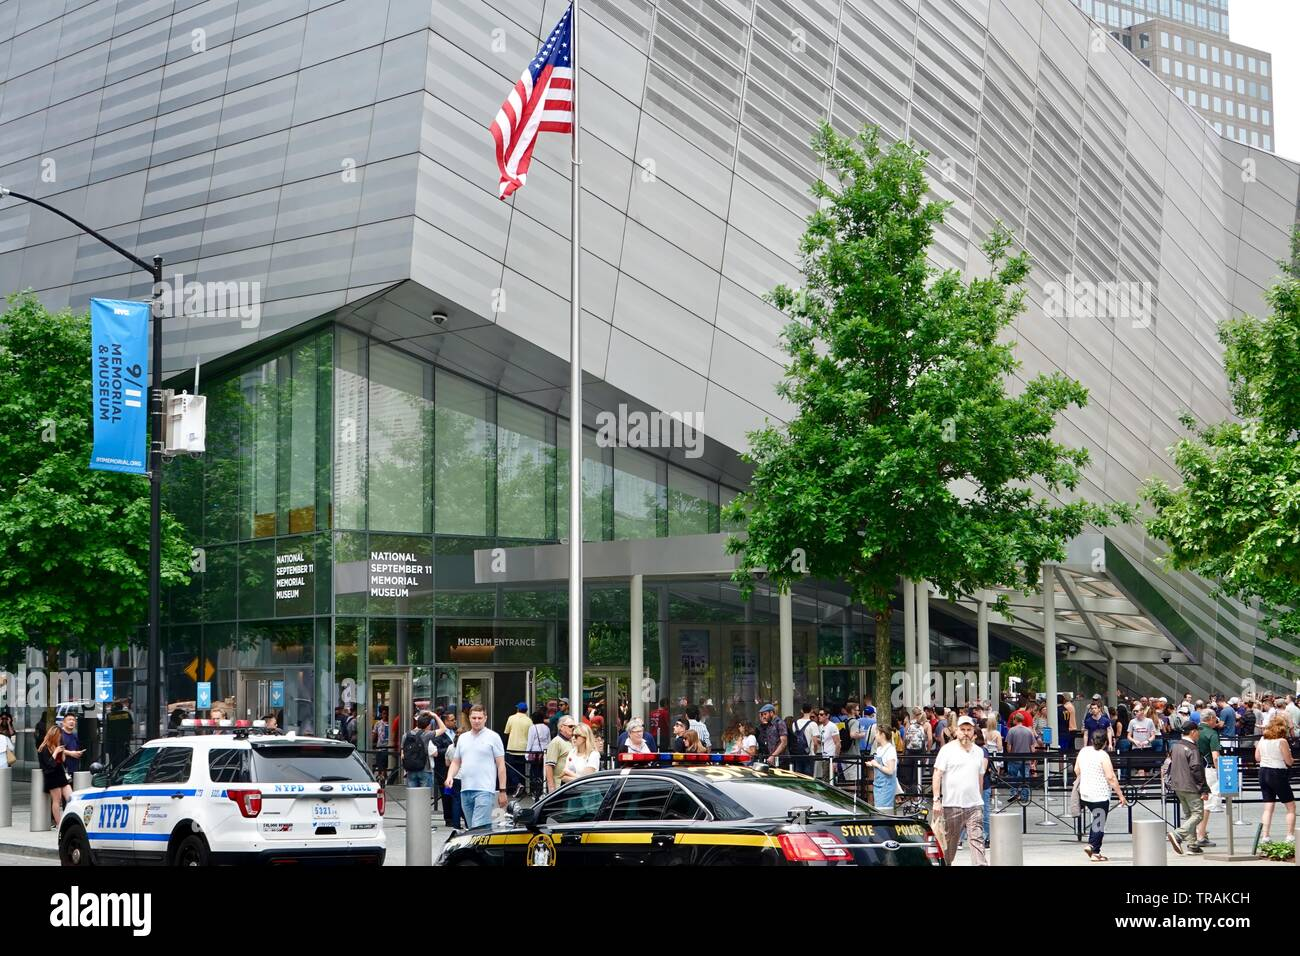 People in line outside the National September 11 Memorial and Museum, Manhattan, New York, NY, USA - Stock Image